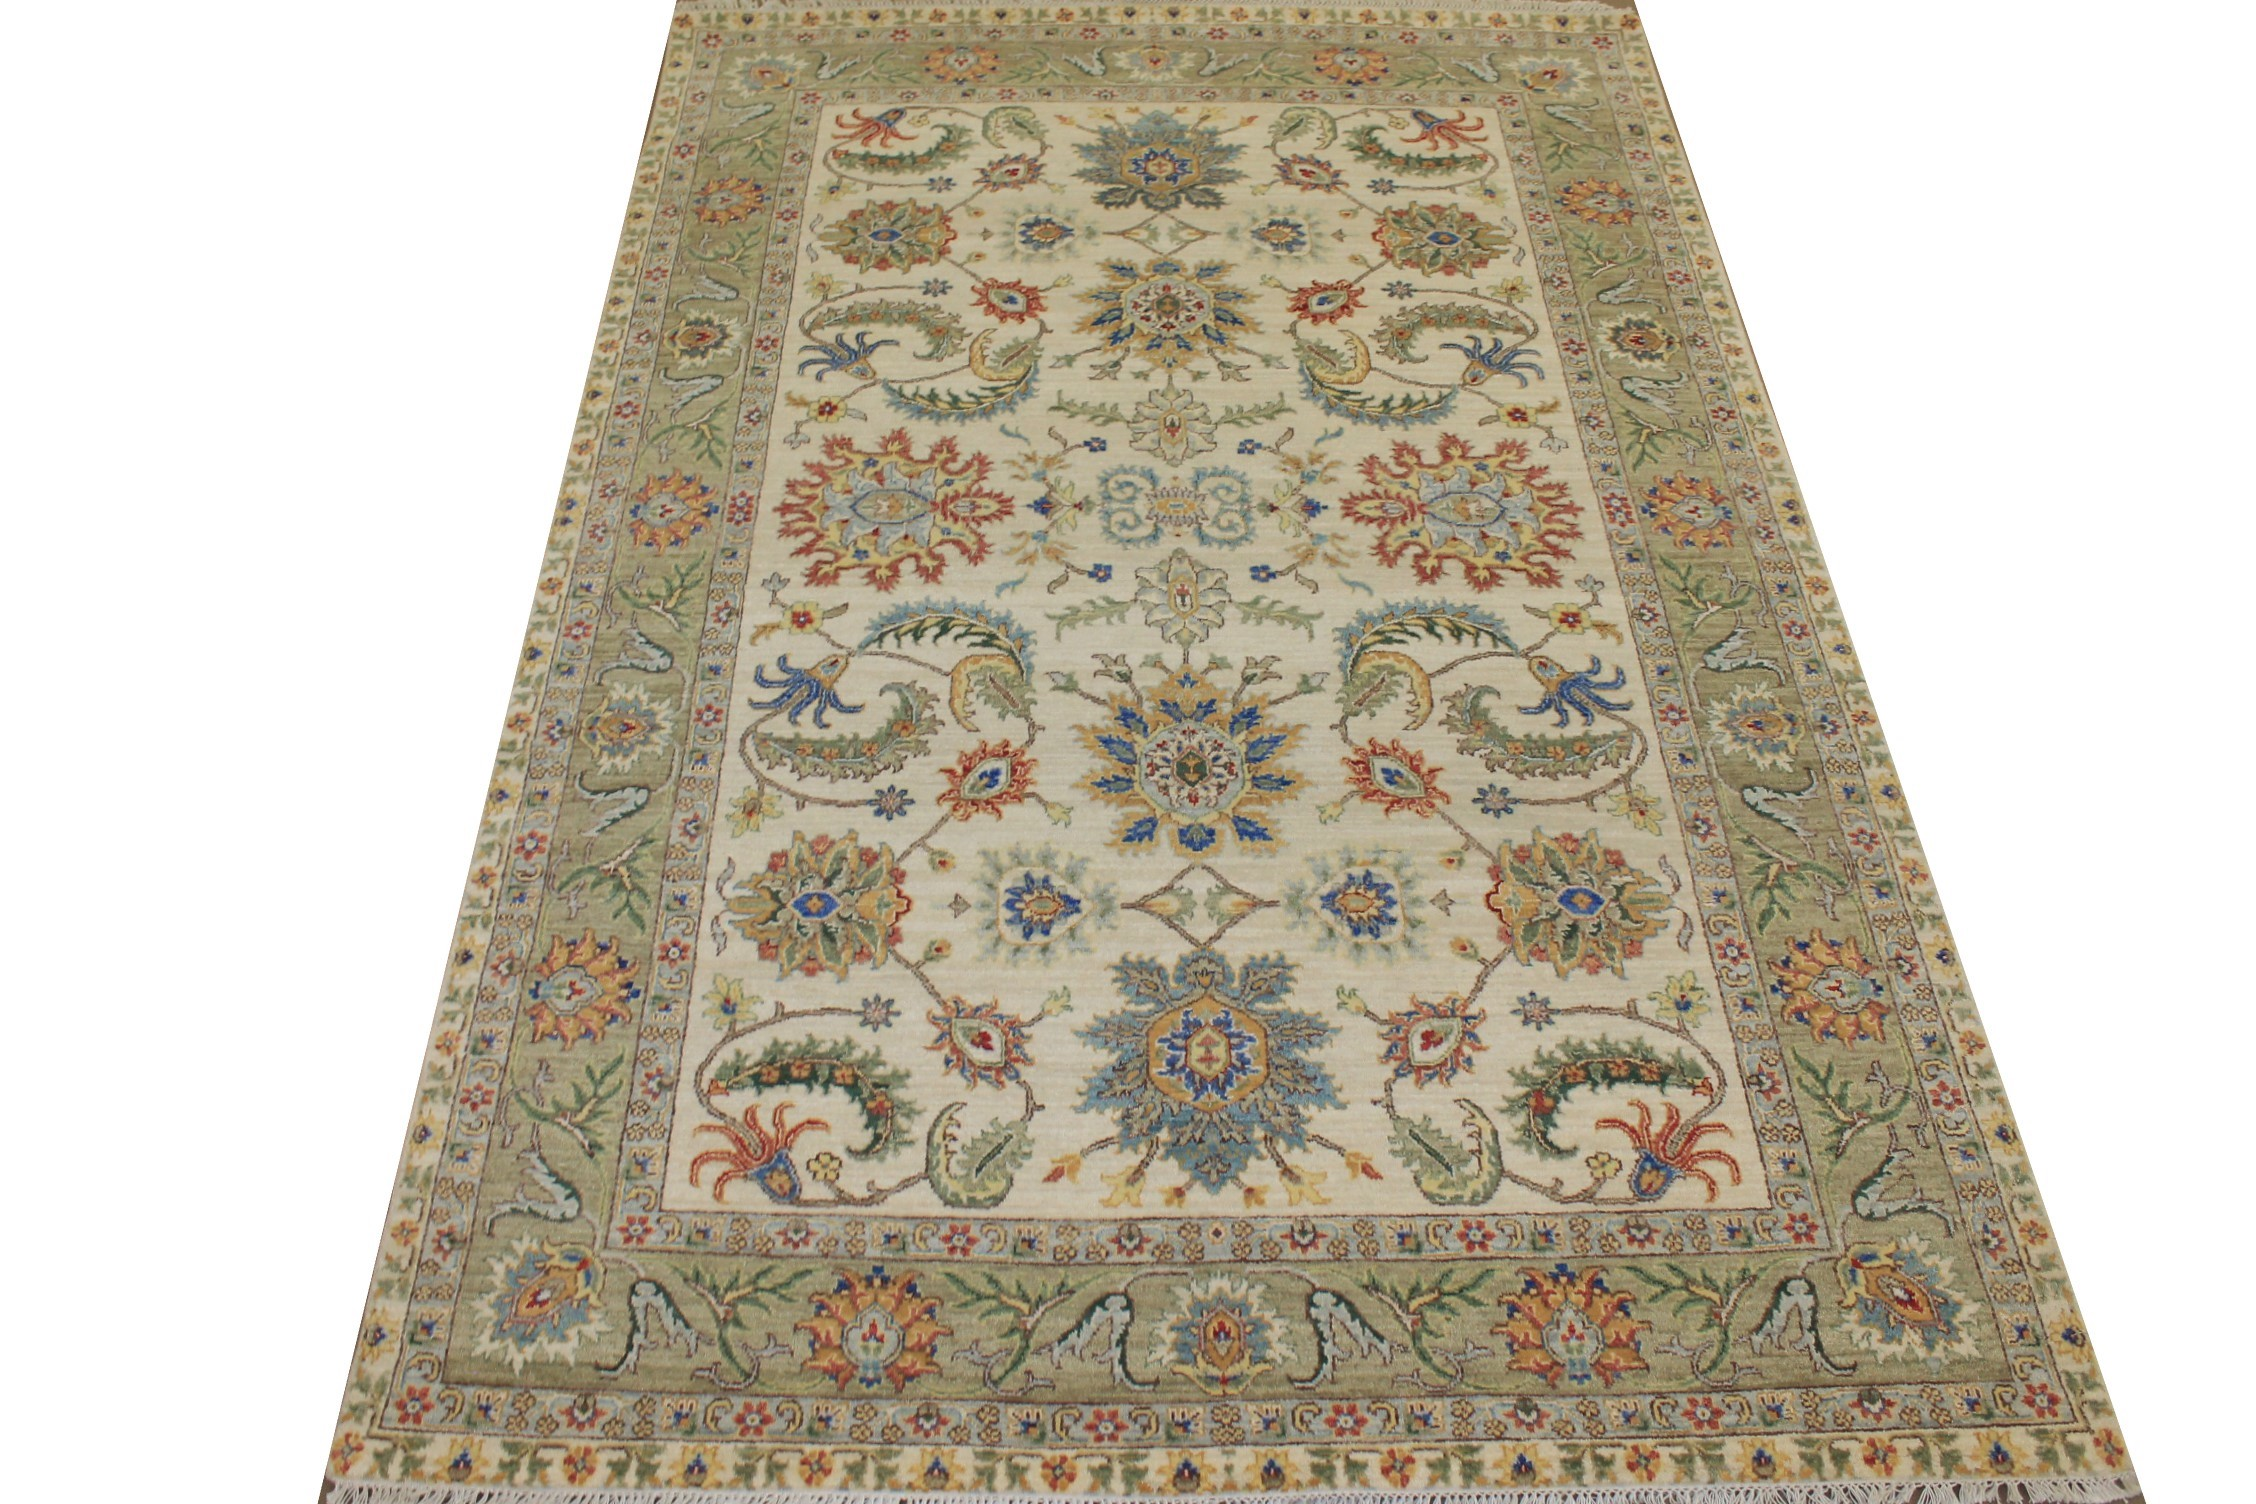 6x9 Traditional Hand Knotted Wool Area Rug - MR024820